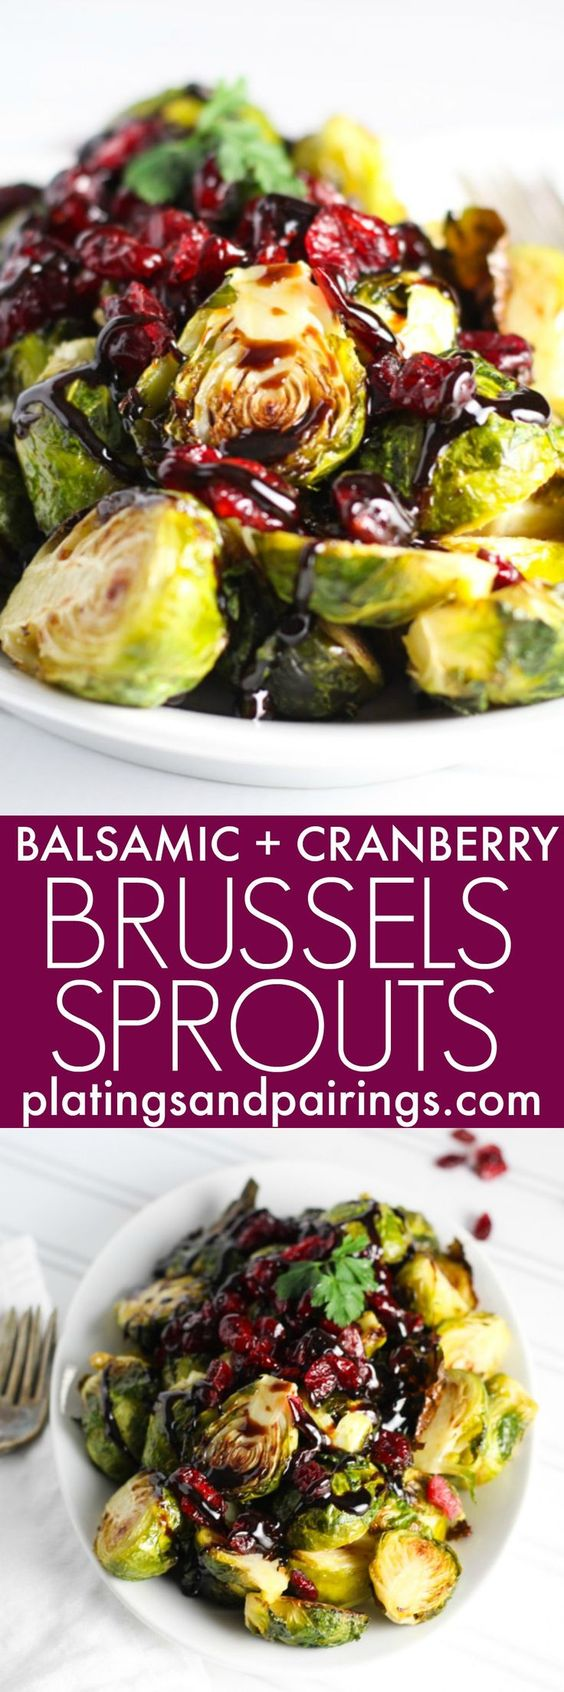 Roasted Brussels Sprouts with Cranberries and Balsamic Reduction.